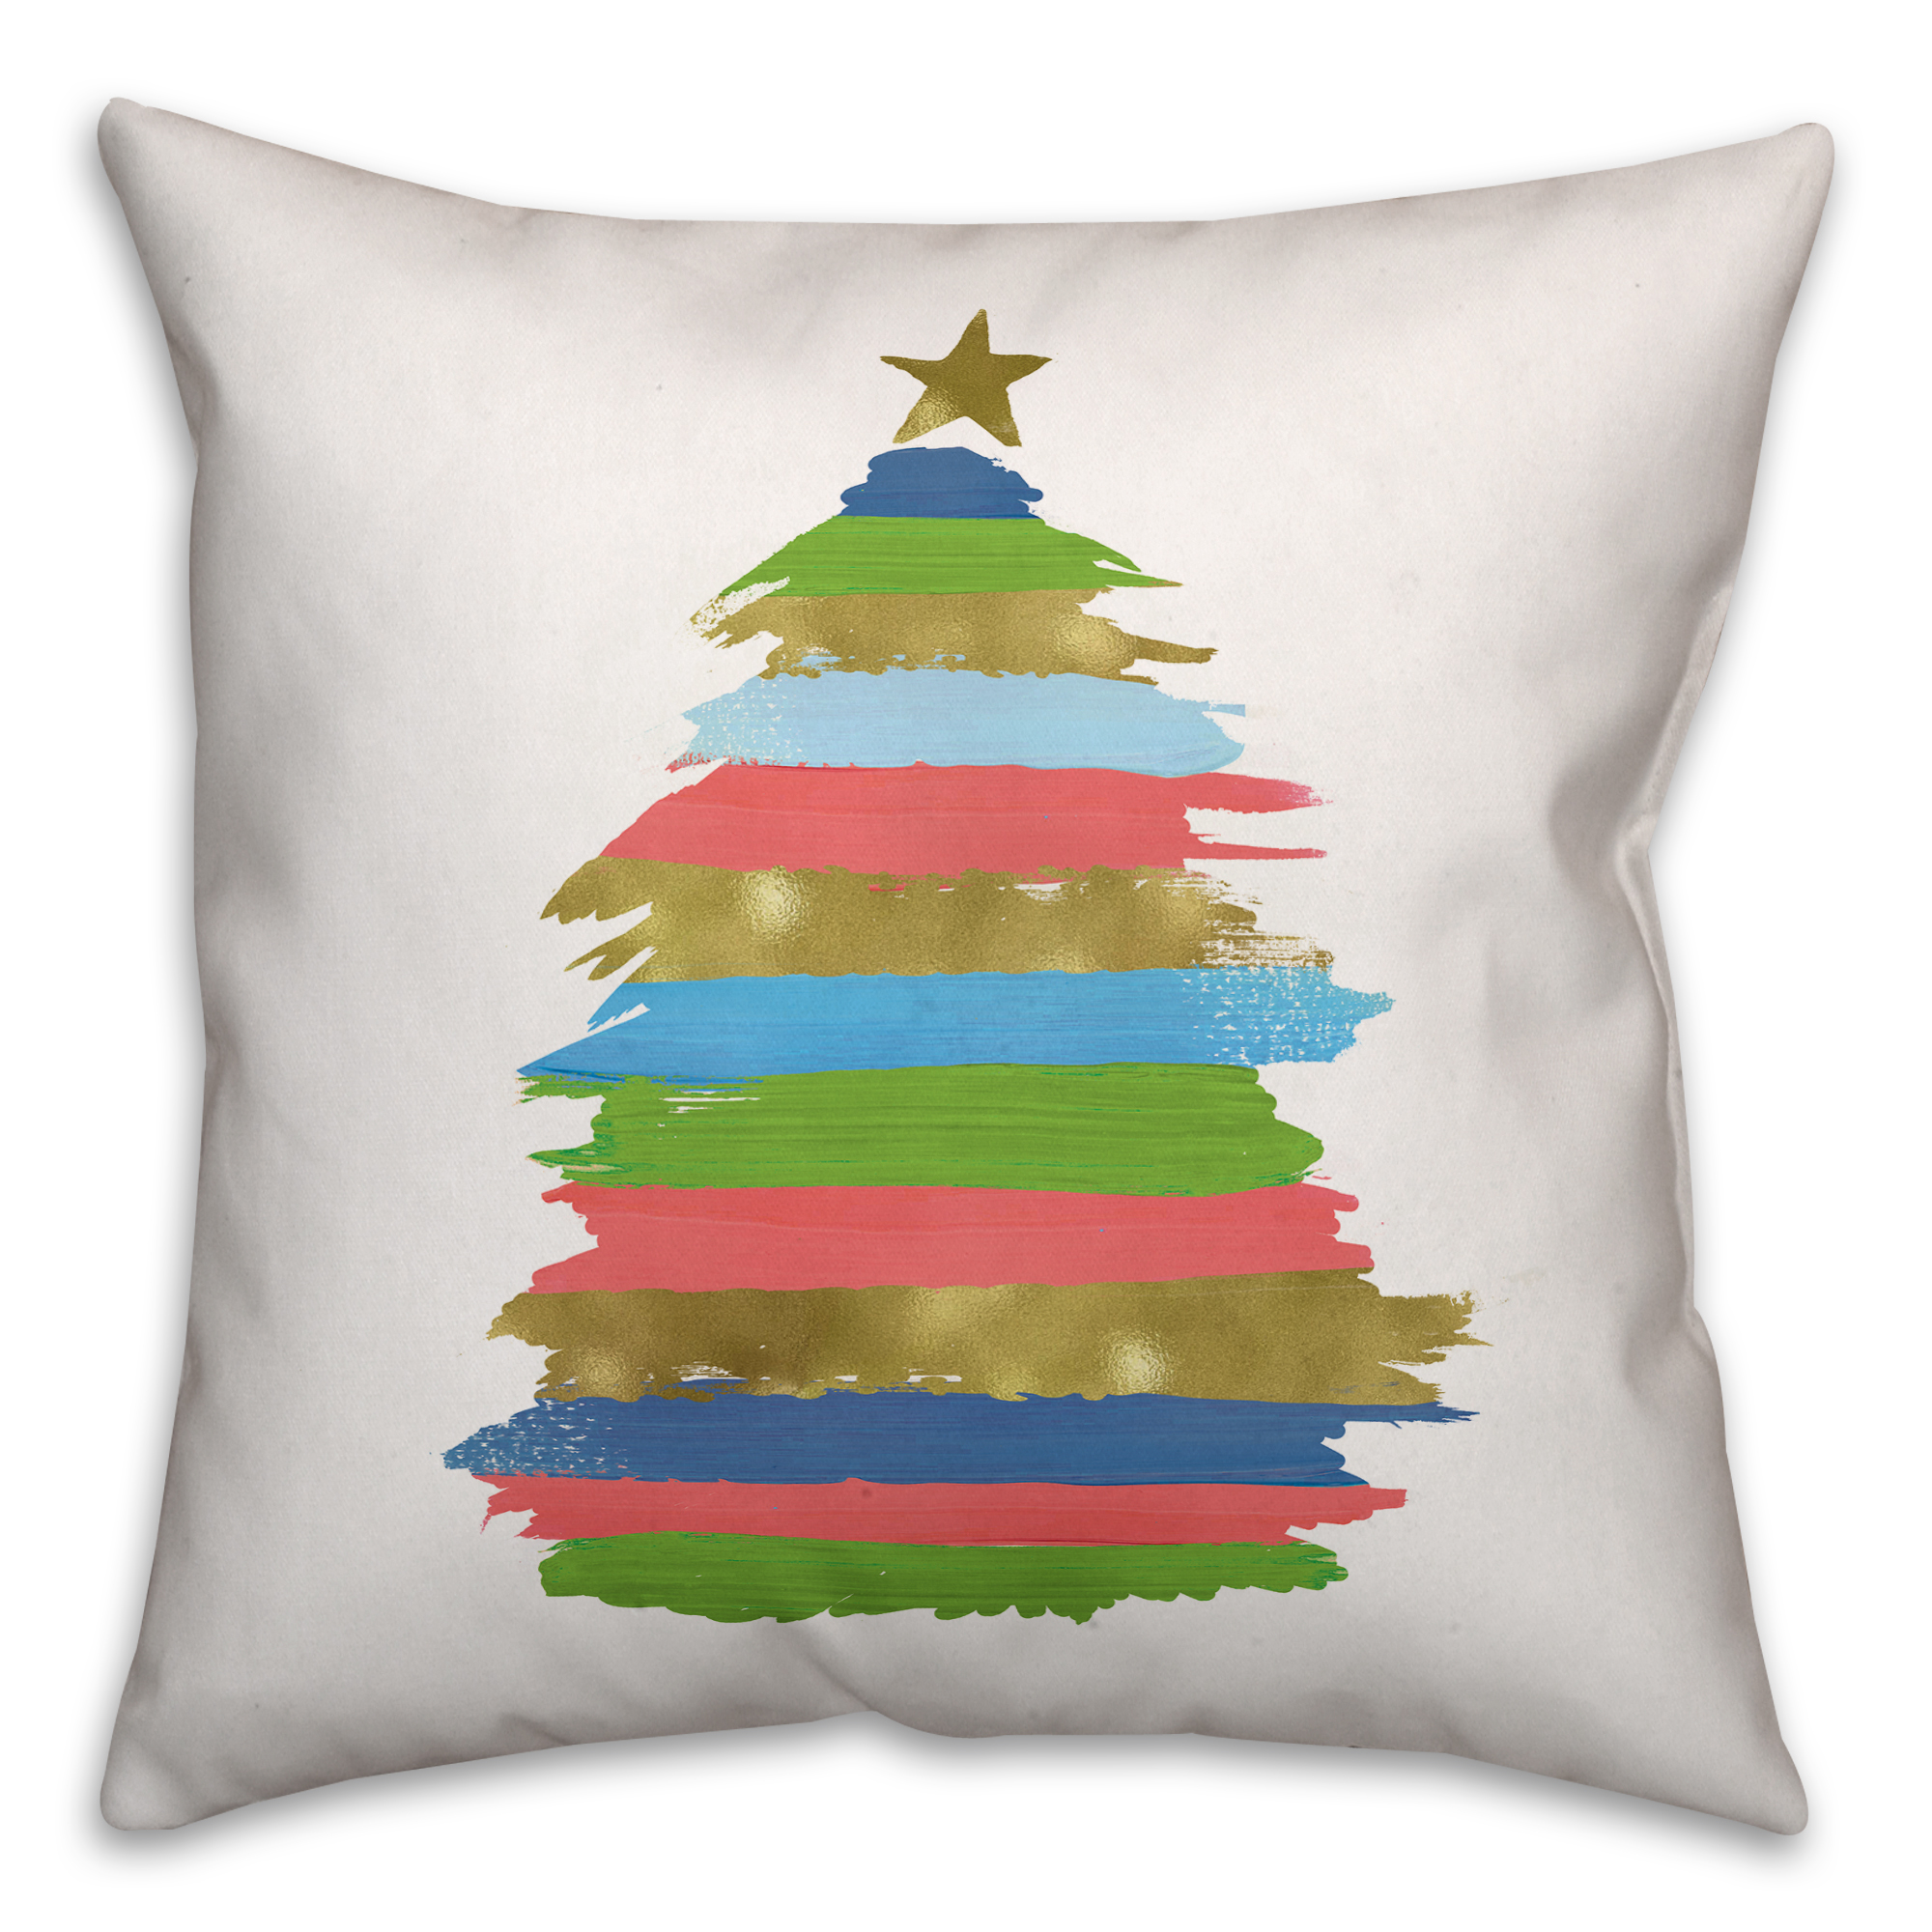 Colorful Christmas Tree 20x20 Spun Poly Pillow Cover